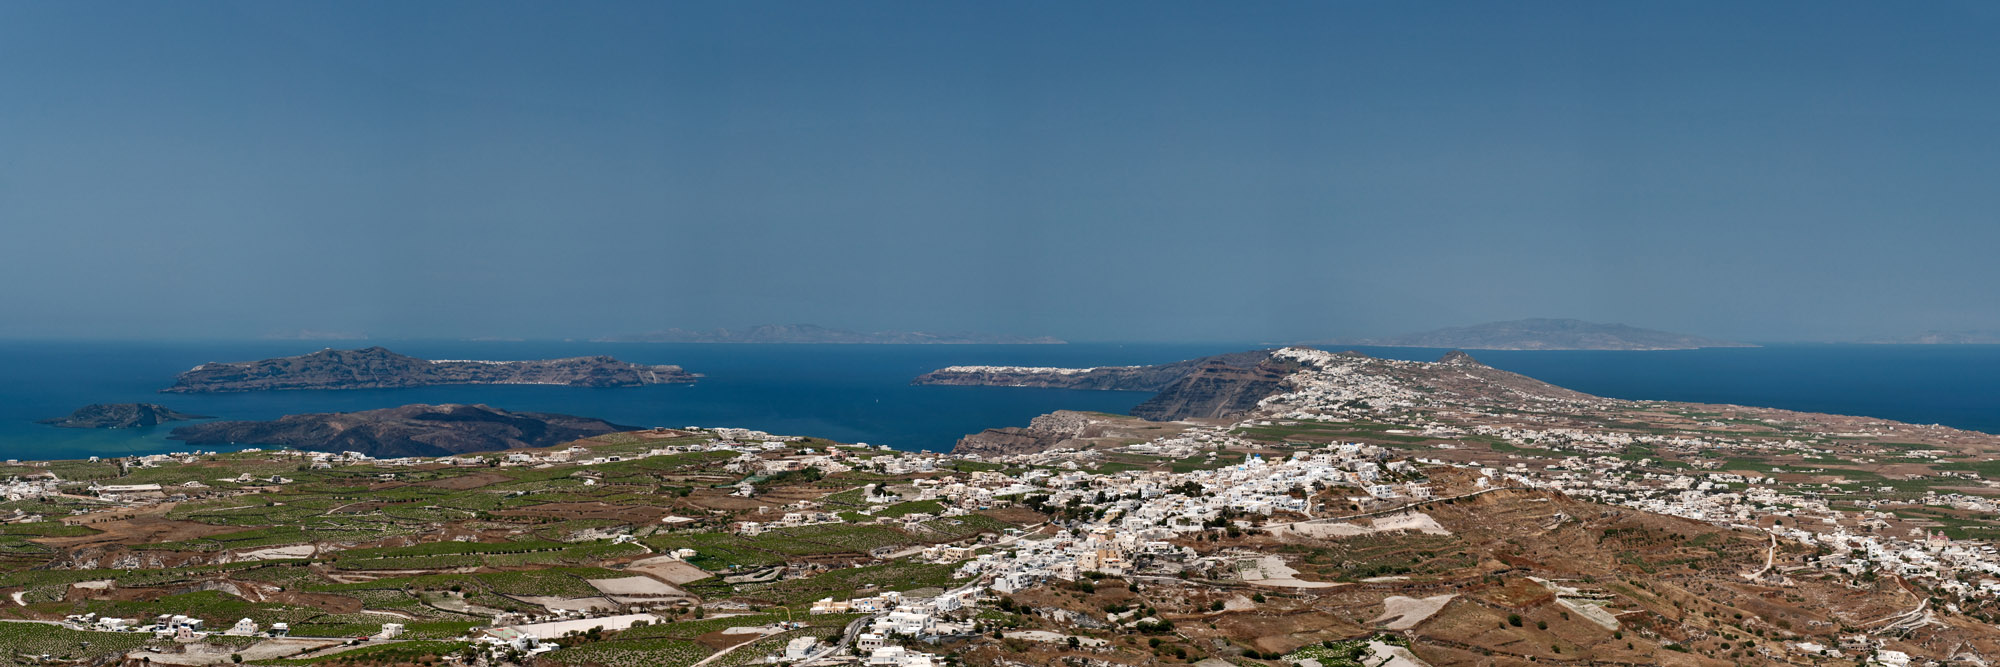 <b><font>Santorini | Greece</font></b> Aerial aspect of the island. The kaldera and volcano are visible